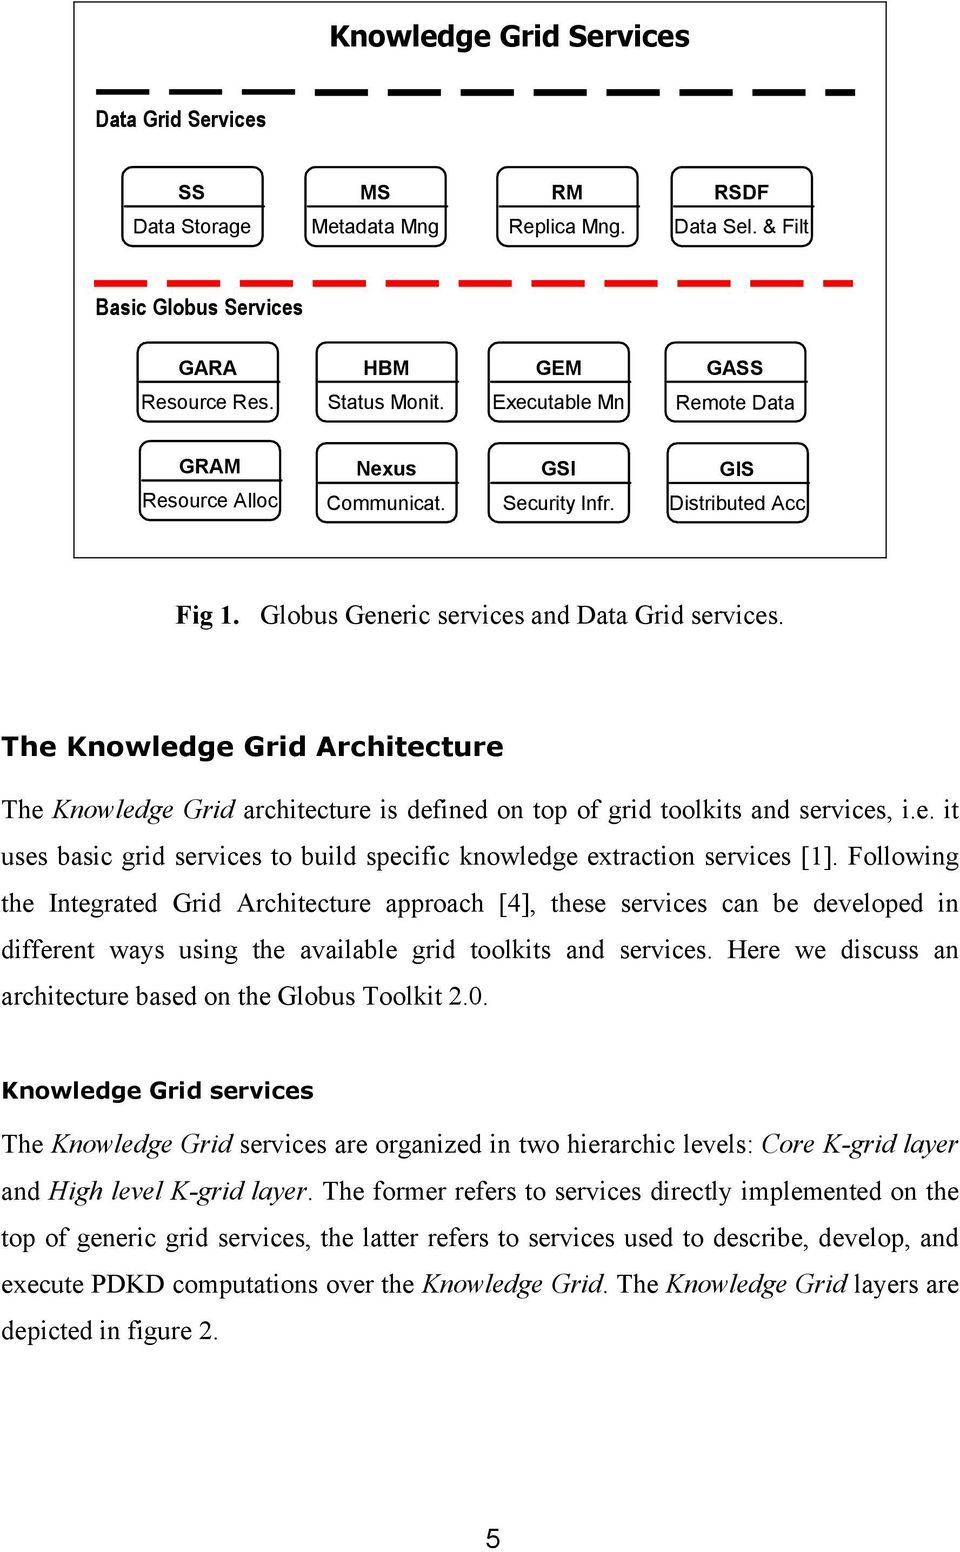 The Knowledge Grid Architecture The Knowledge Grid architecture is defined on top of grid toolkits and services, i.e. it uses basic grid services to build specific knowledge extraction services [1].